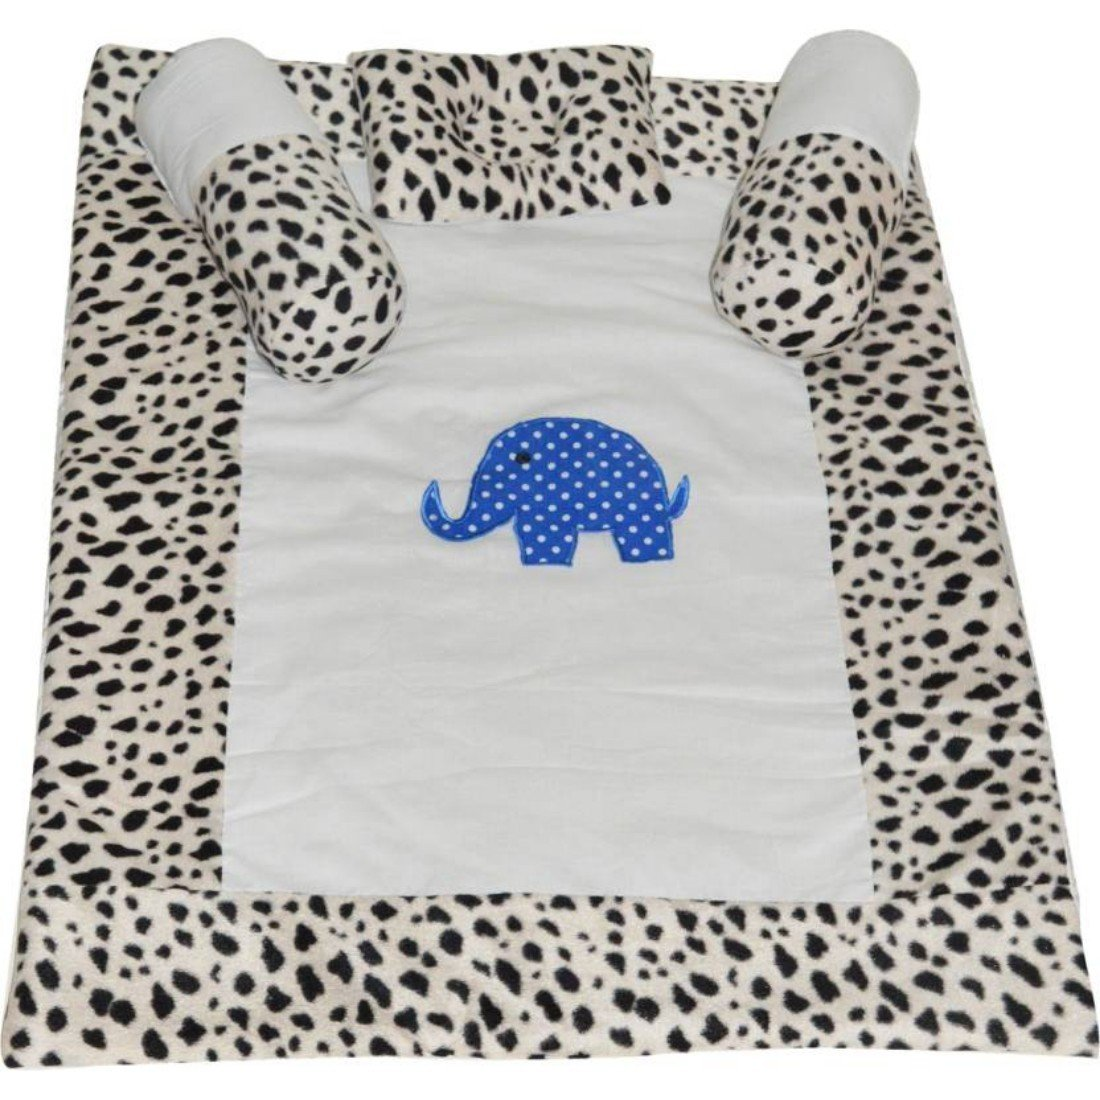 Creative Textiles Soft Cotton Baby Bedding Gift Set for Baby